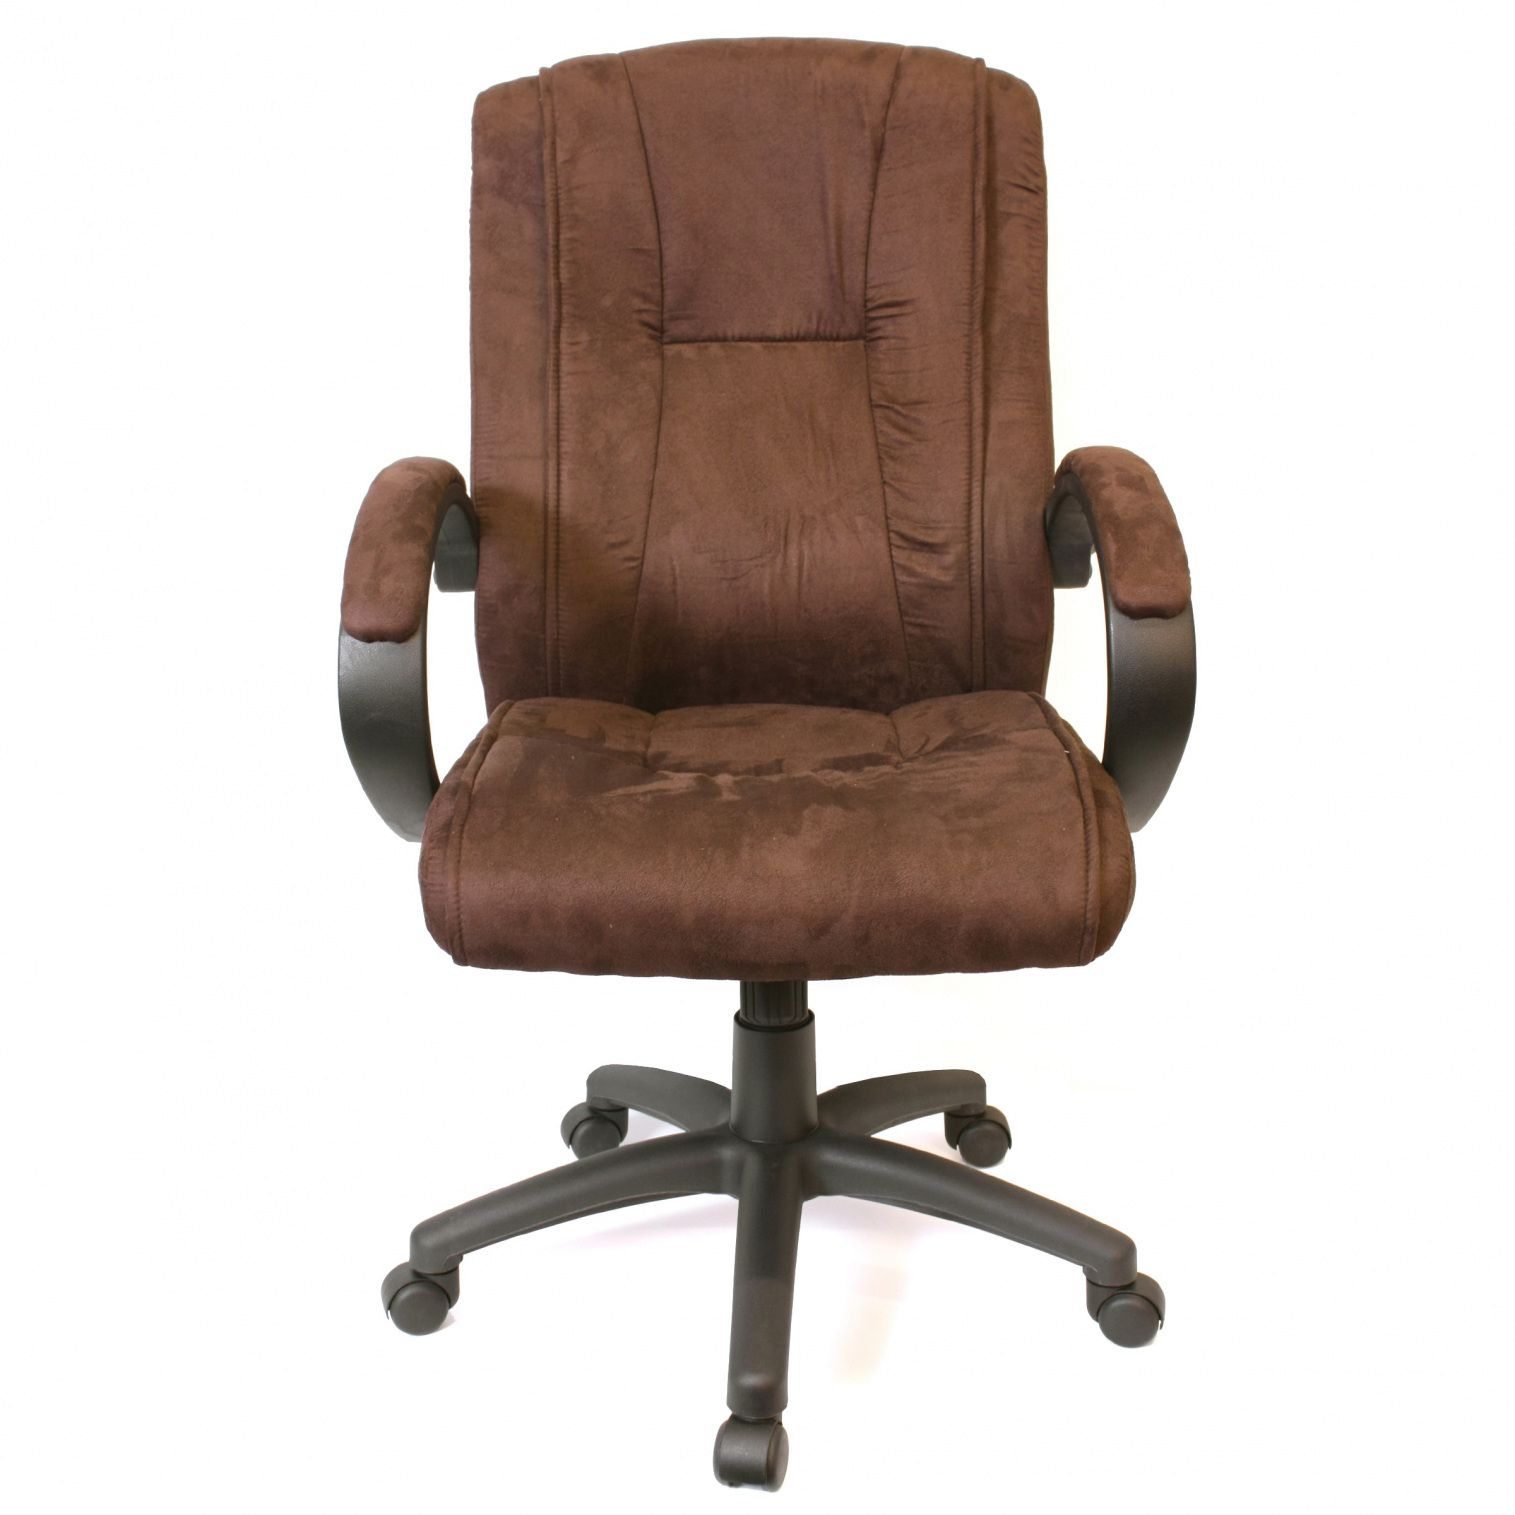 microsuede office chair office furniture for home check more at